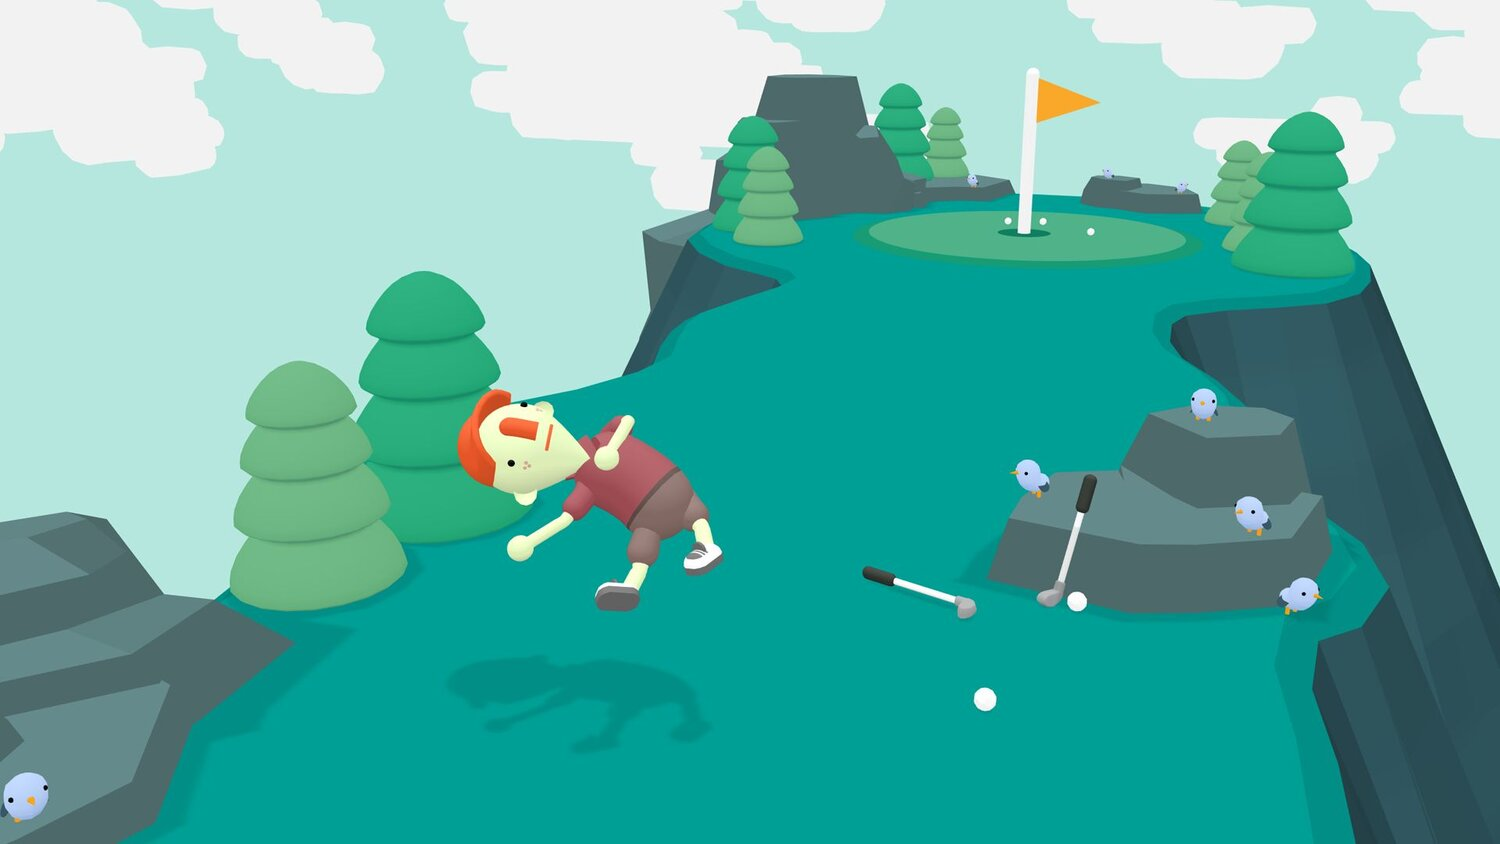 WHAT THE GOLF? is Now on Steam with a New Level Editor